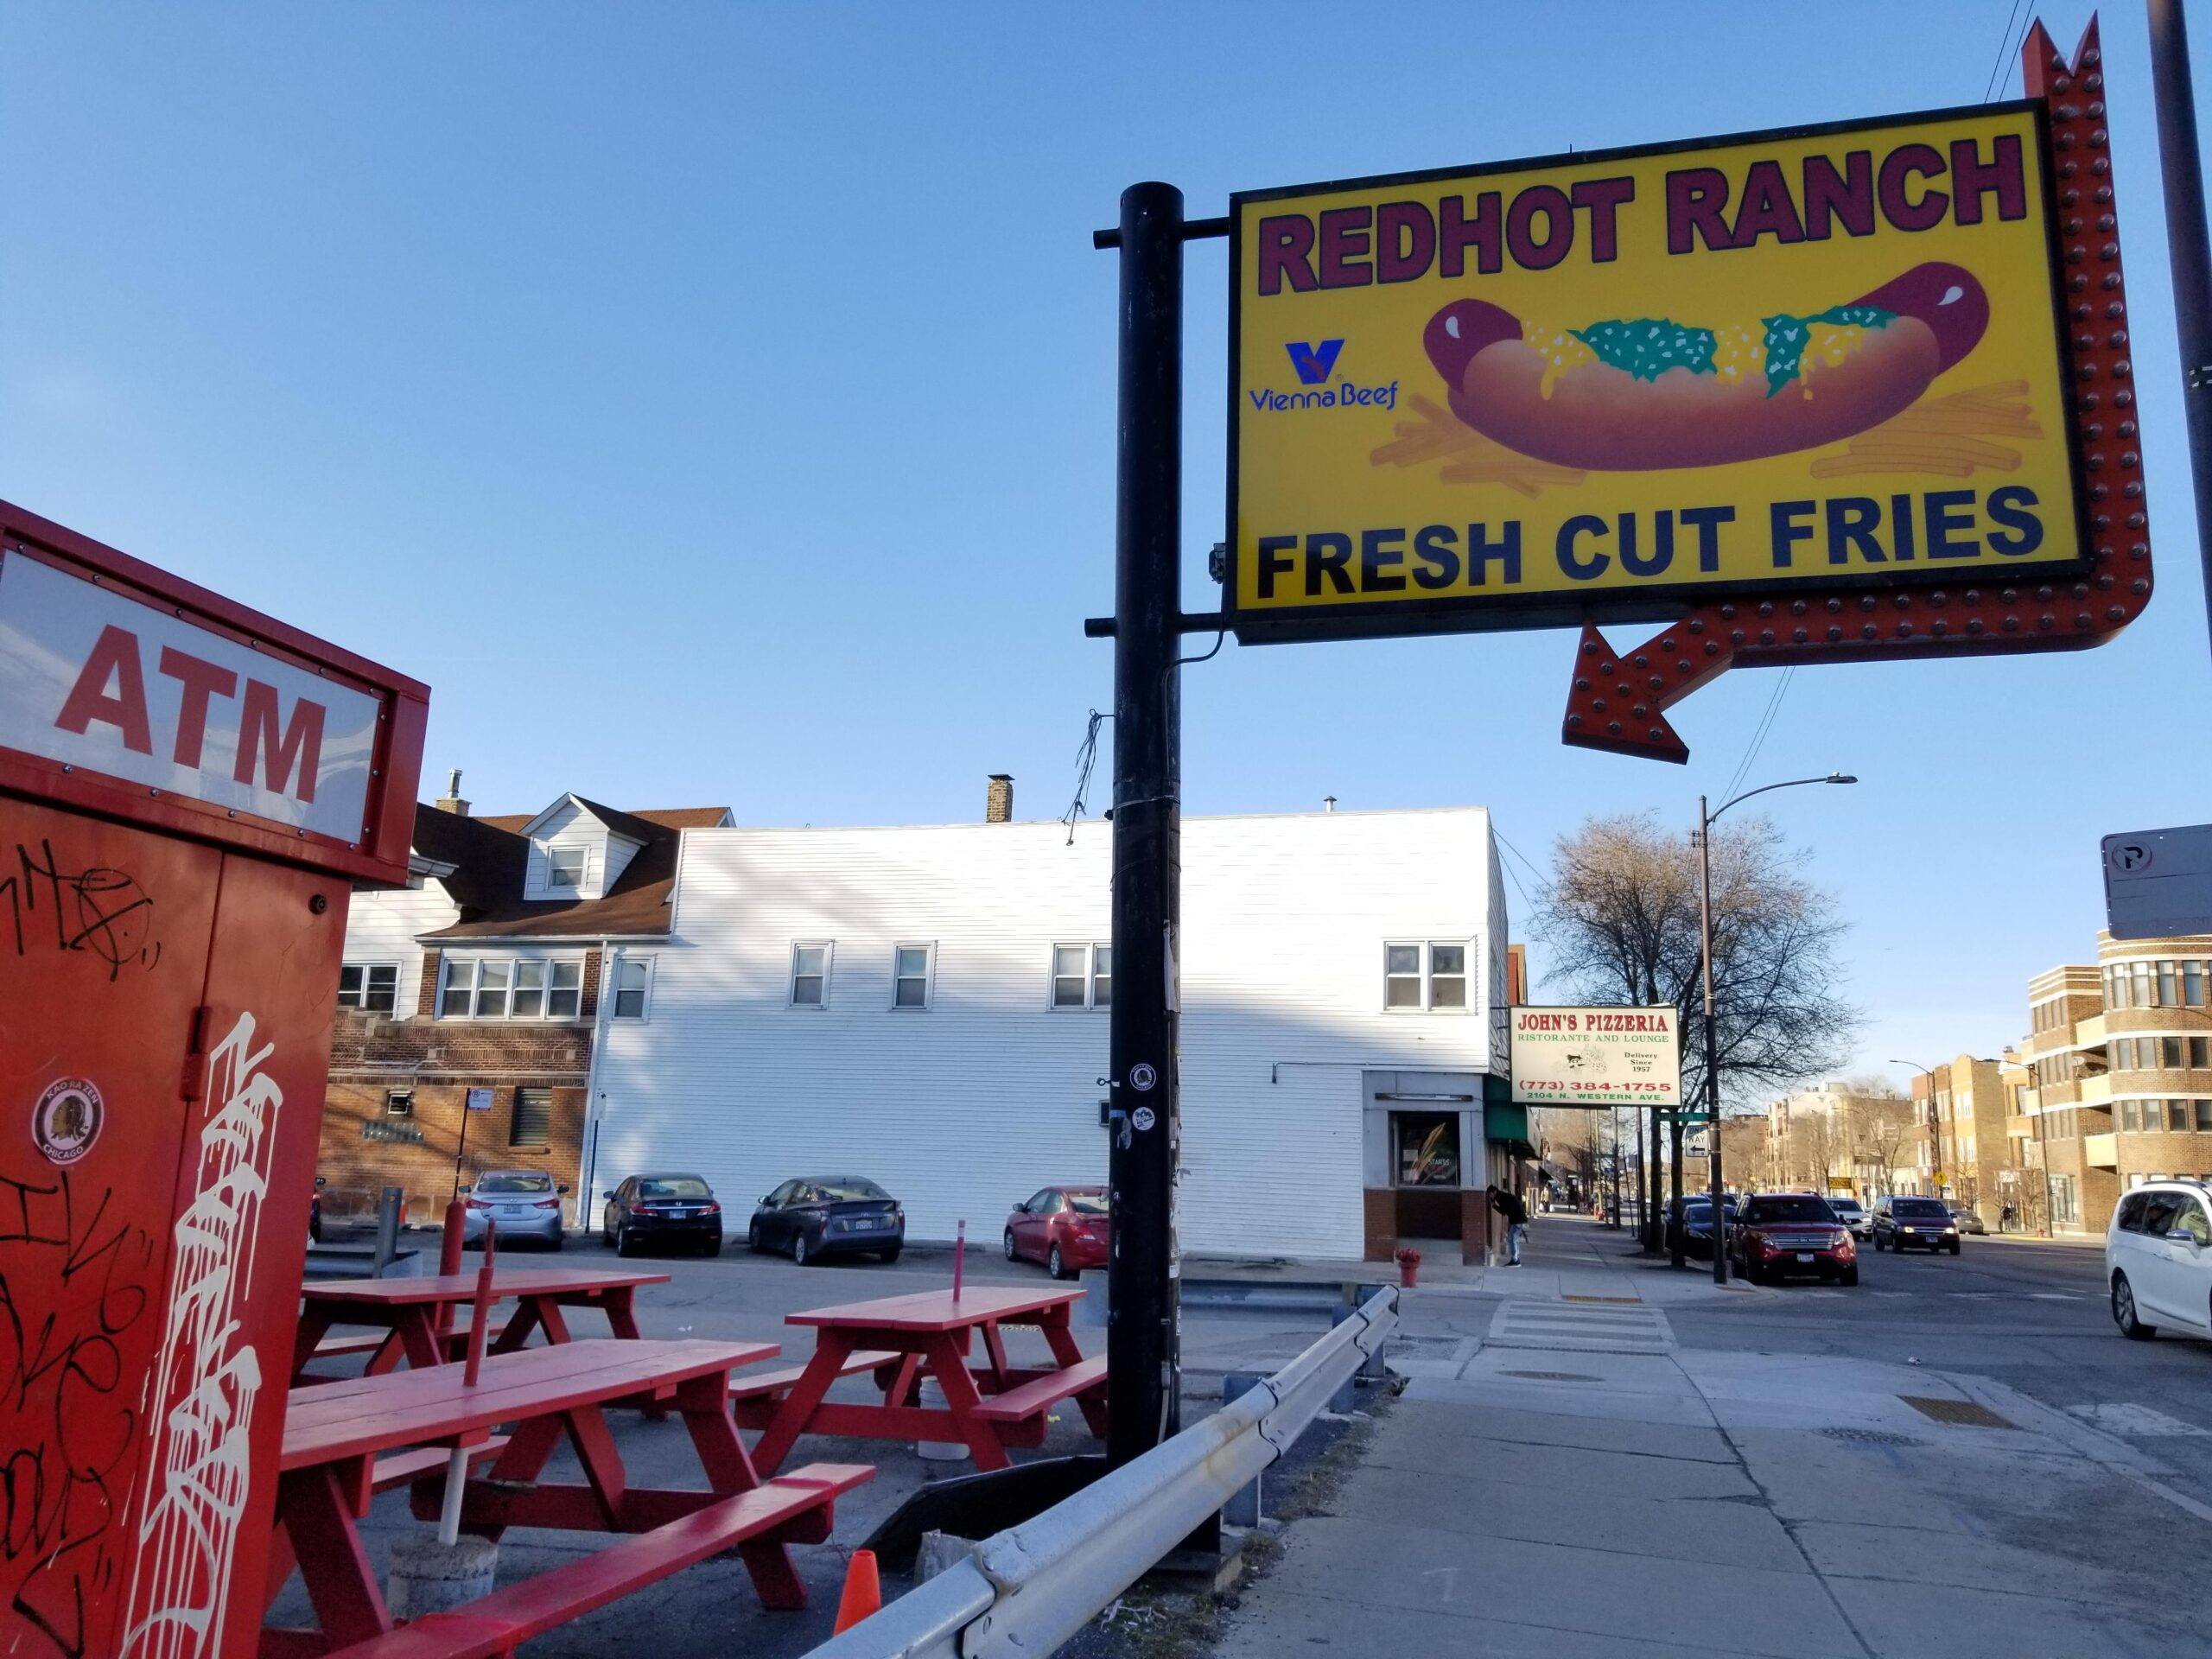 Redhot Ranch in Chicago